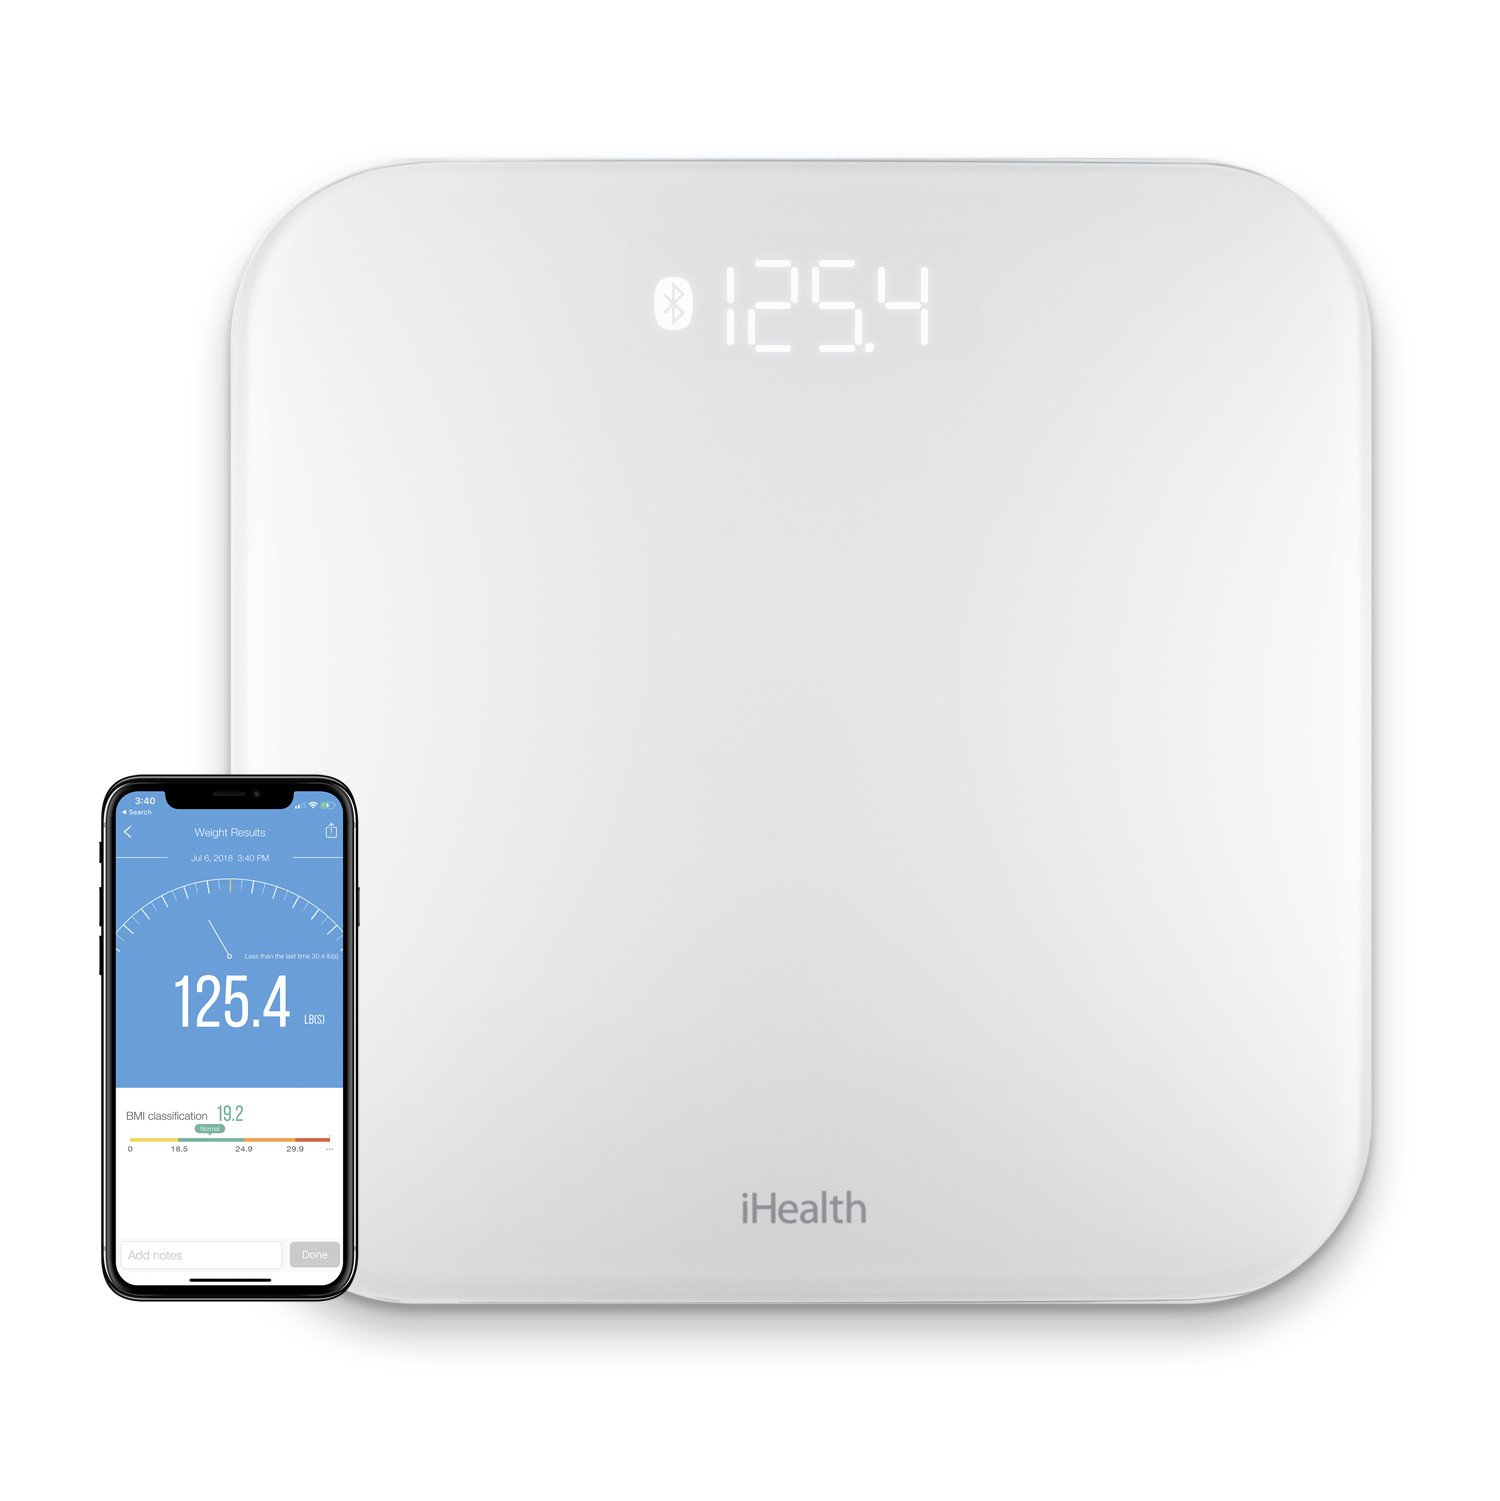 iHealth Lite Wireless Smart Scale for Apple and Android with Step-On Technology, 400 Pounds, Smart Weight & BMI Bluetooth Digital Scale with Smartphone App-Measures Weight & BMI for 20 Users